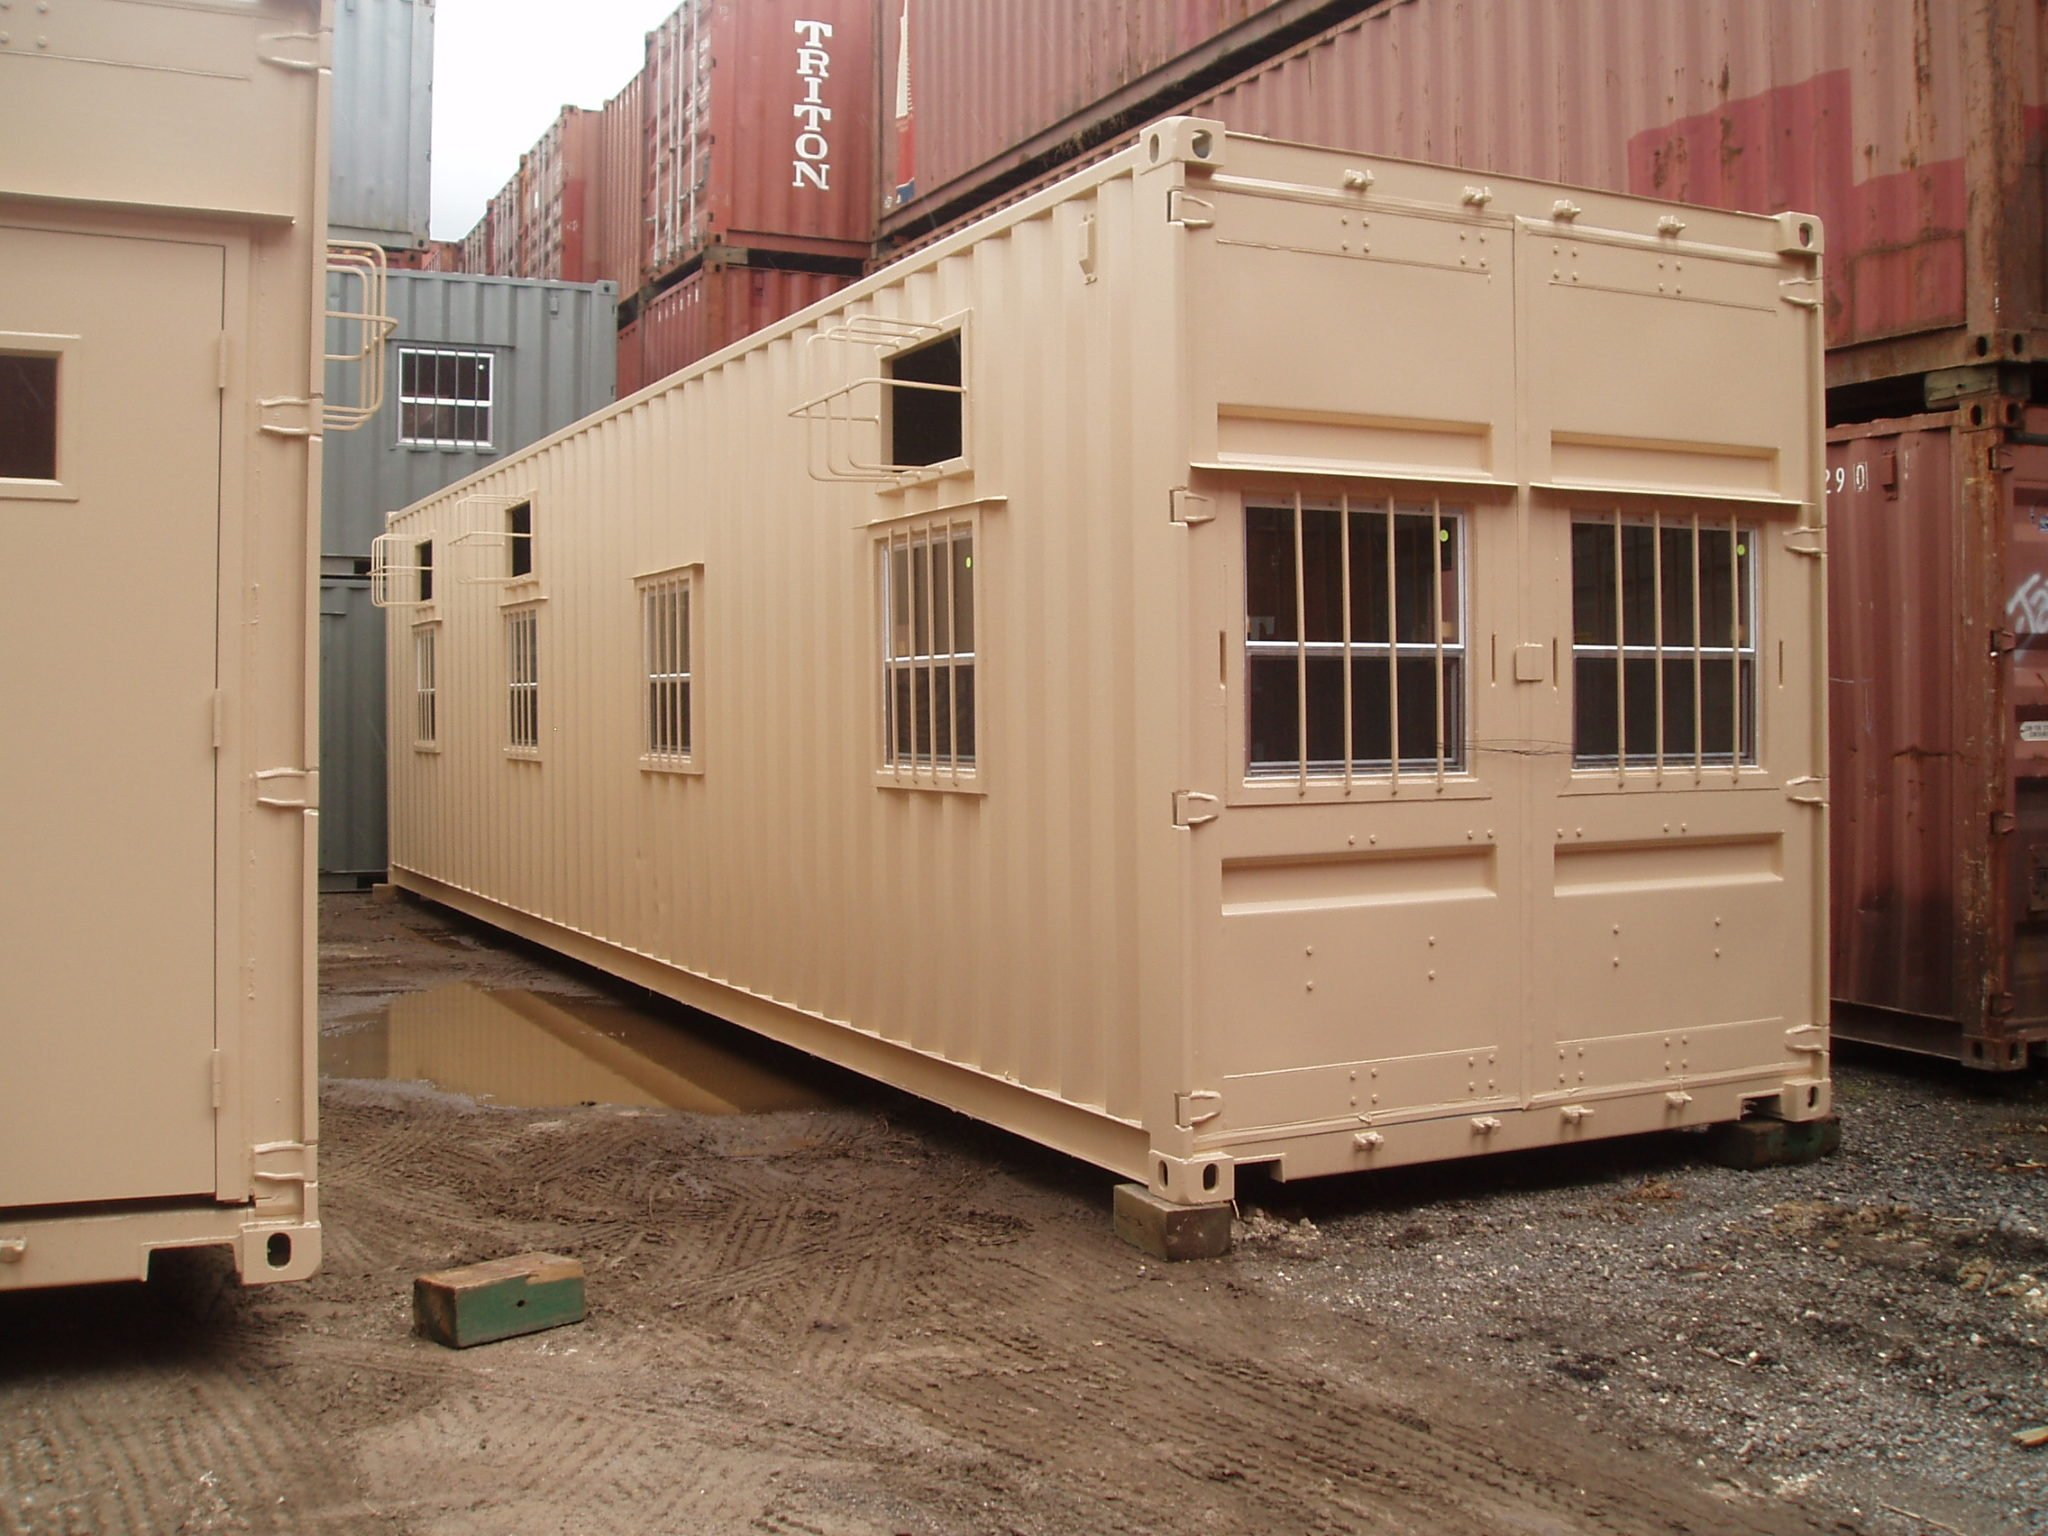 A American Container's buildout with multiple barred windows and A/Cs